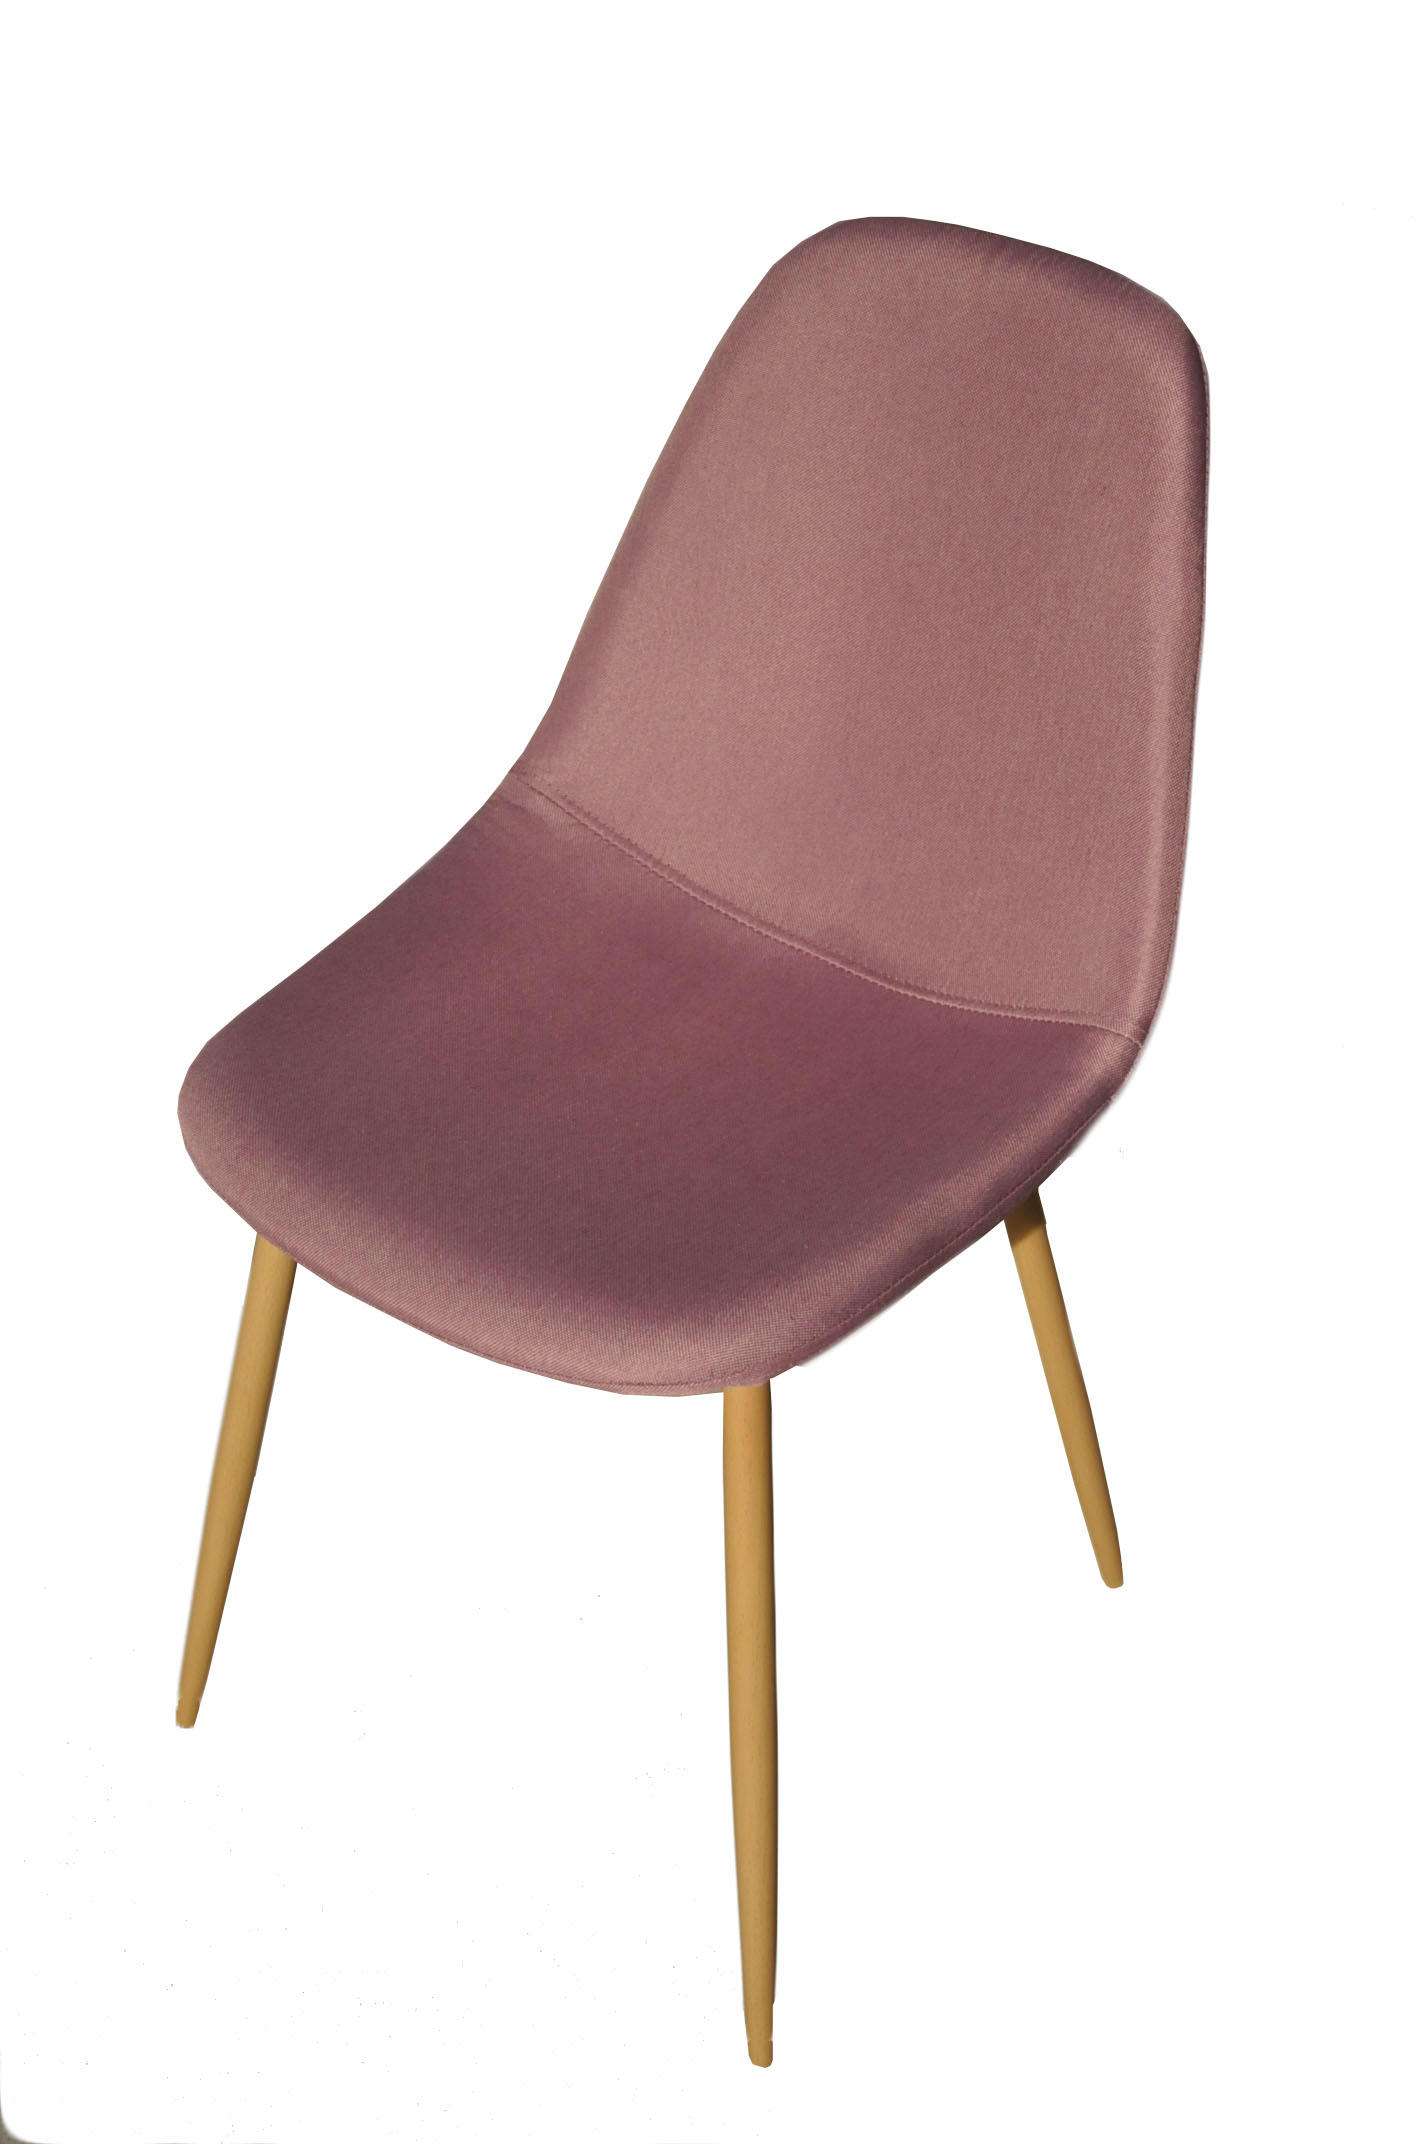 Emejing chaise de jardin rose contemporary design trends for Chaise scandinave plexi